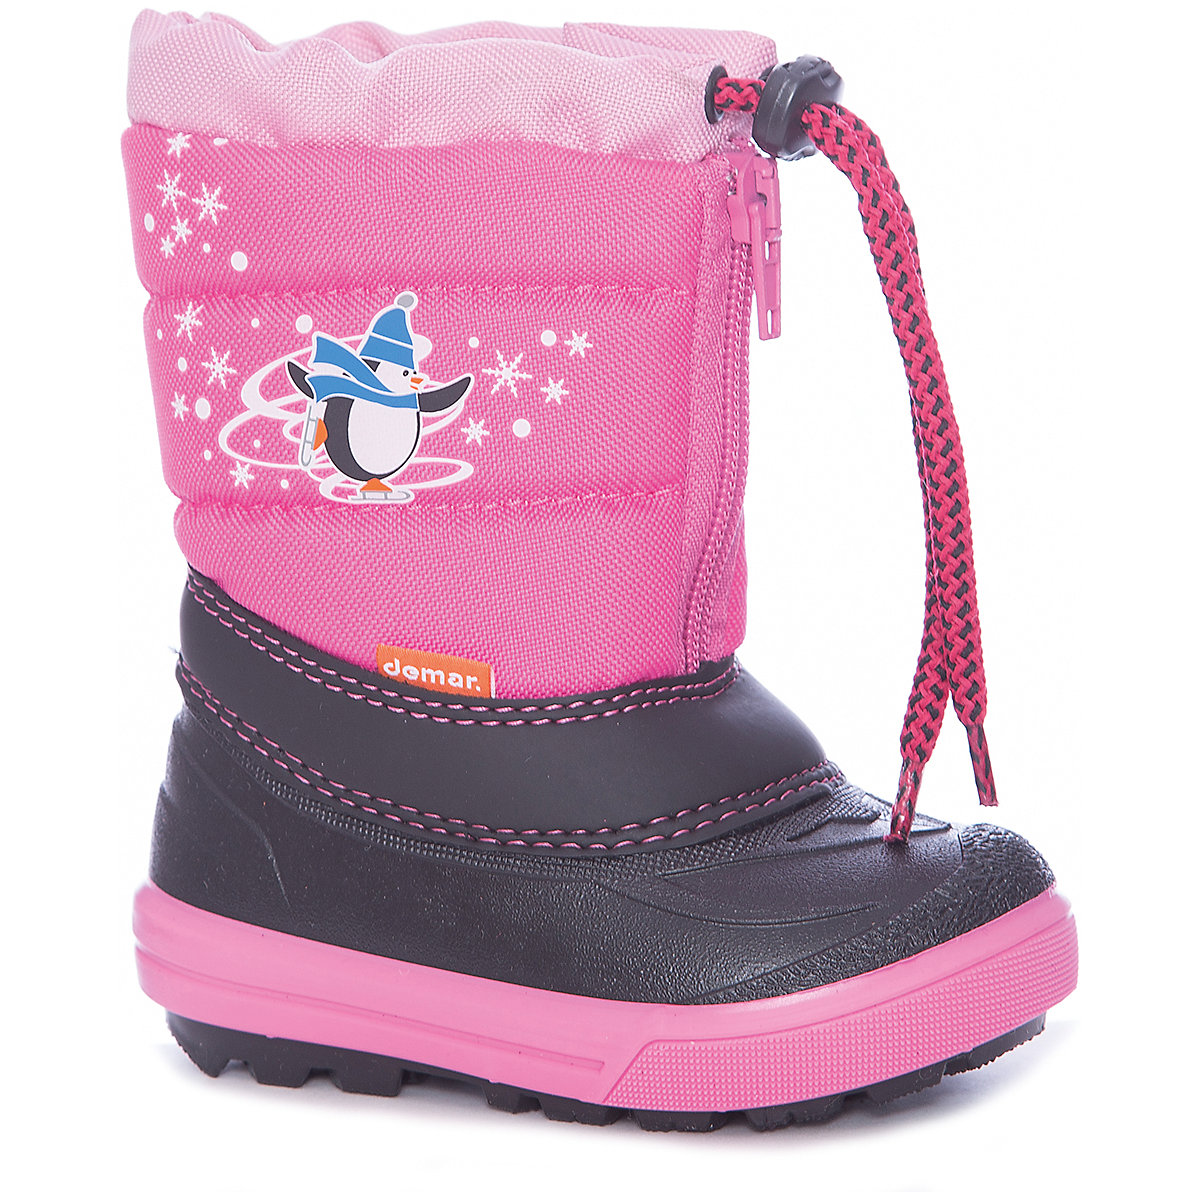 Boots Demar for girls 7134867 Valenki Uggi Winter Baby Kids Children shoes